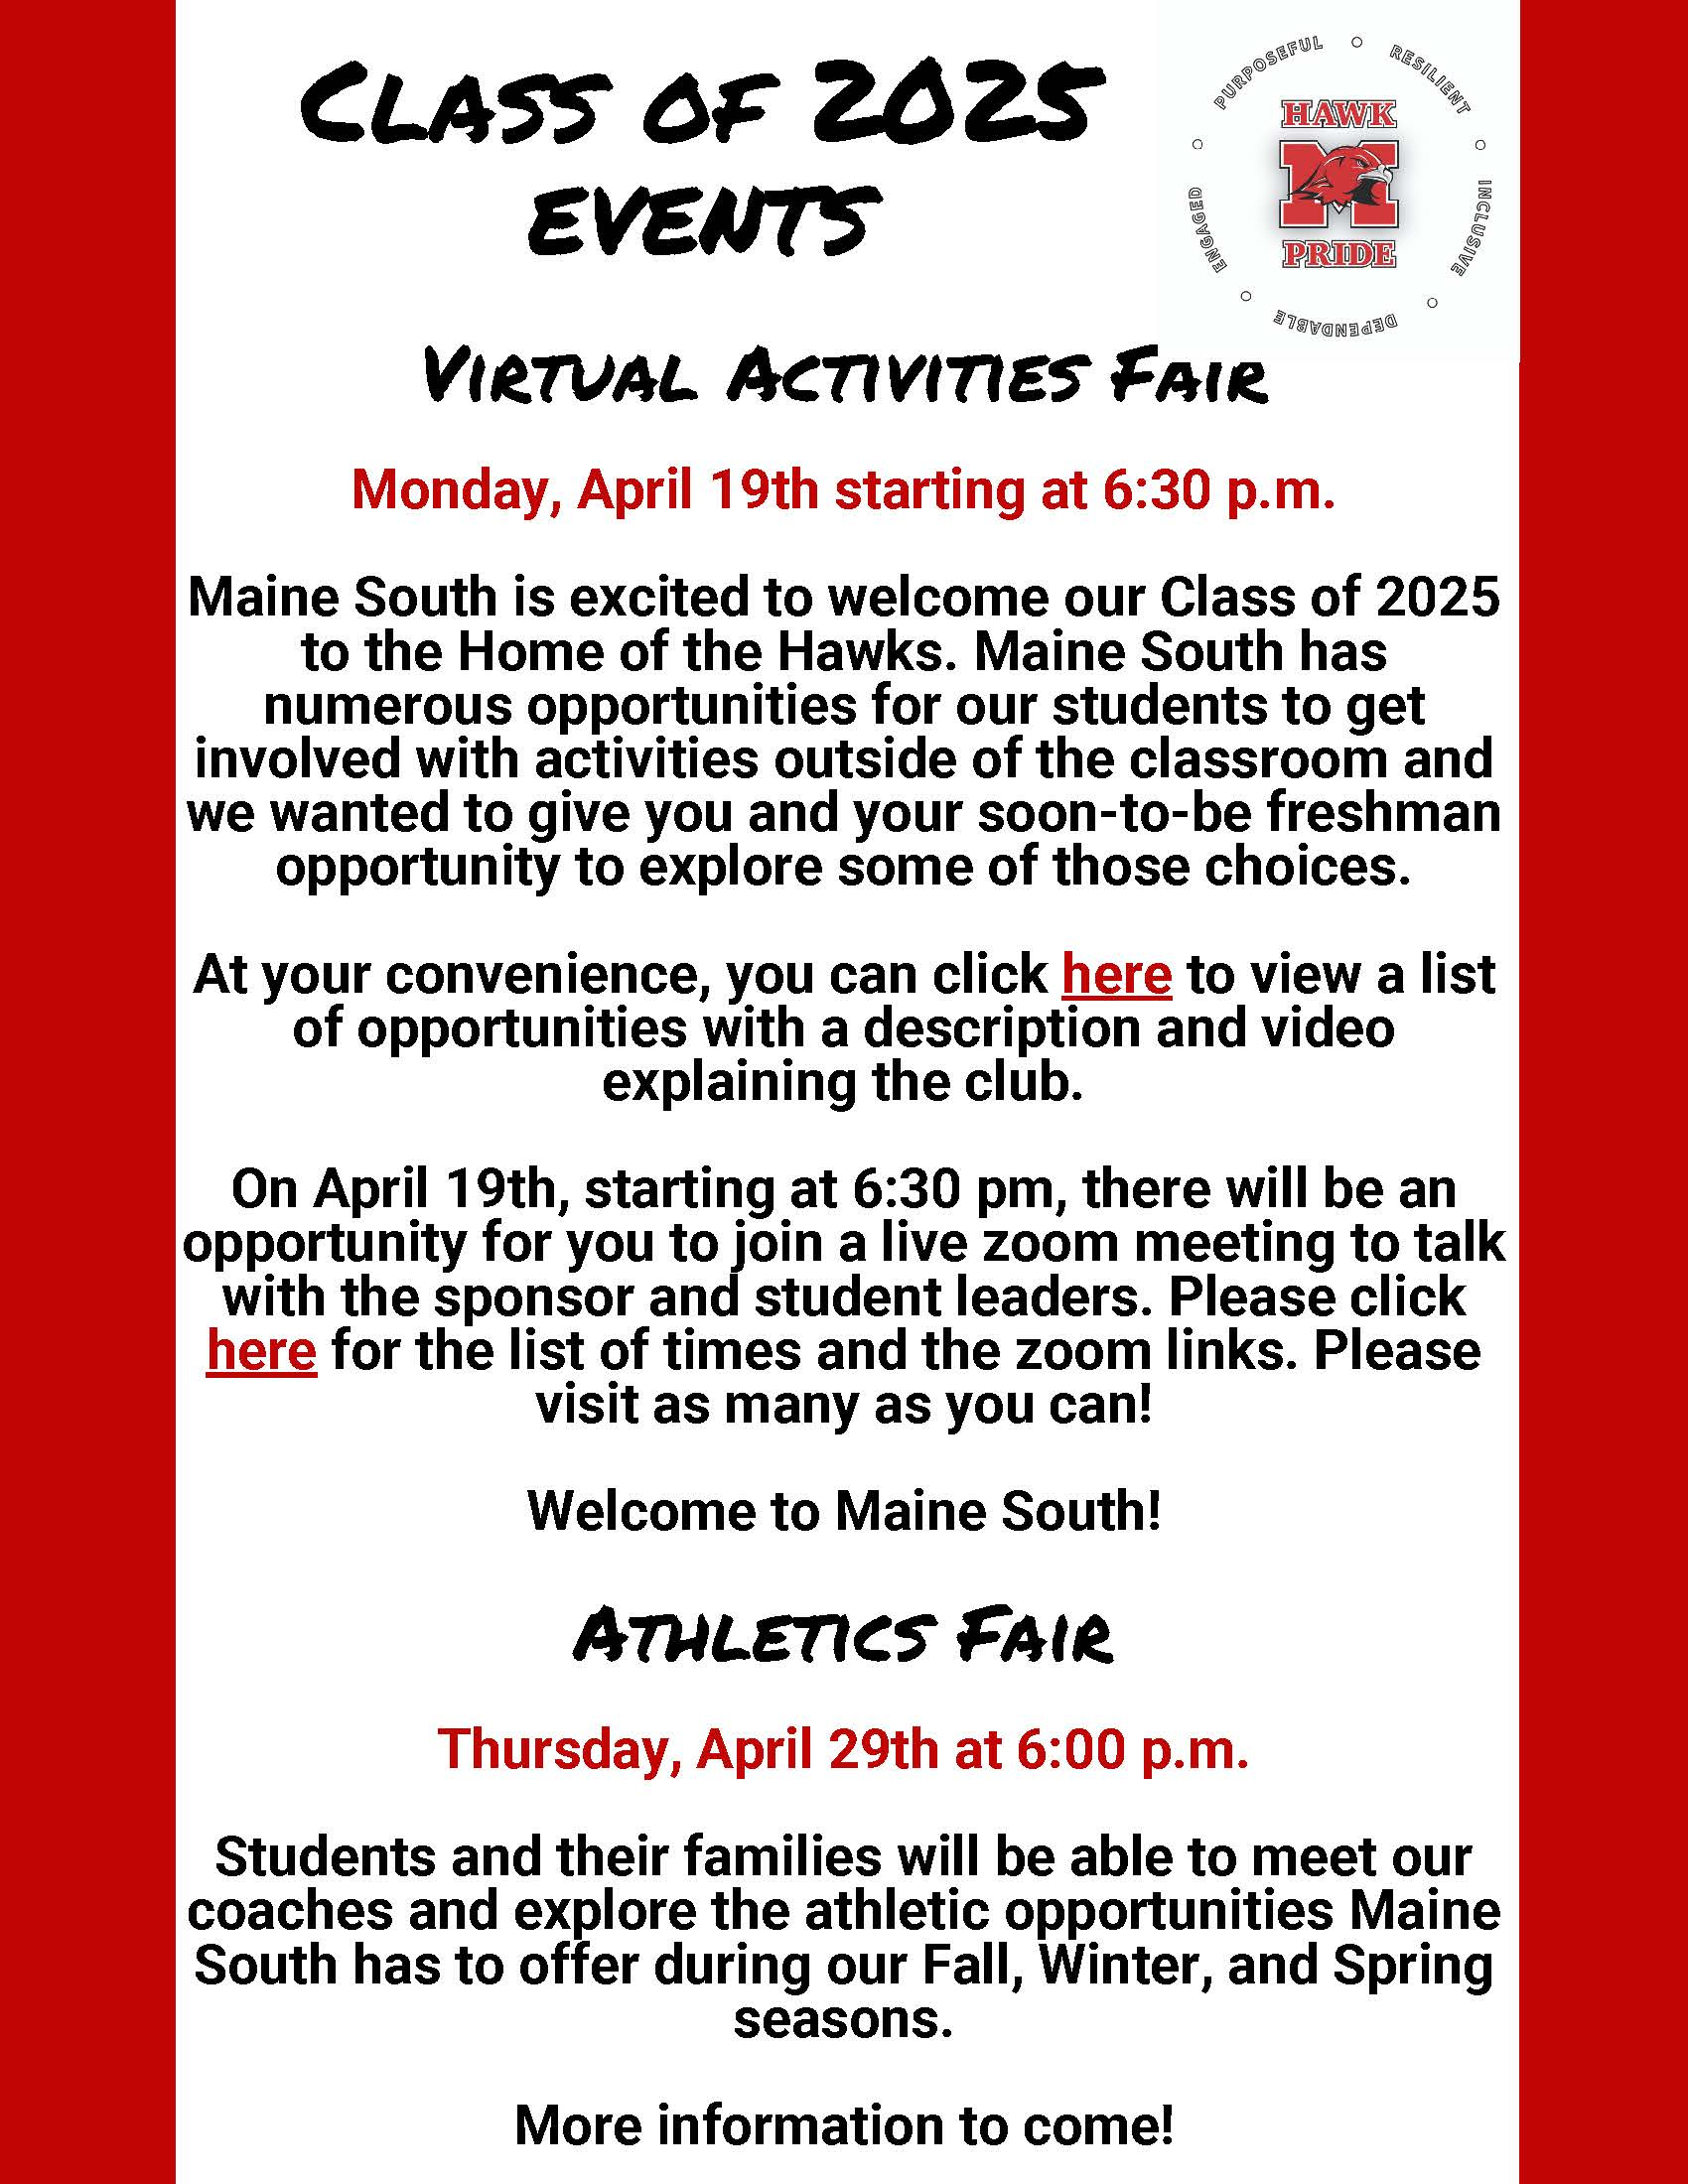 Class of 2025 Events